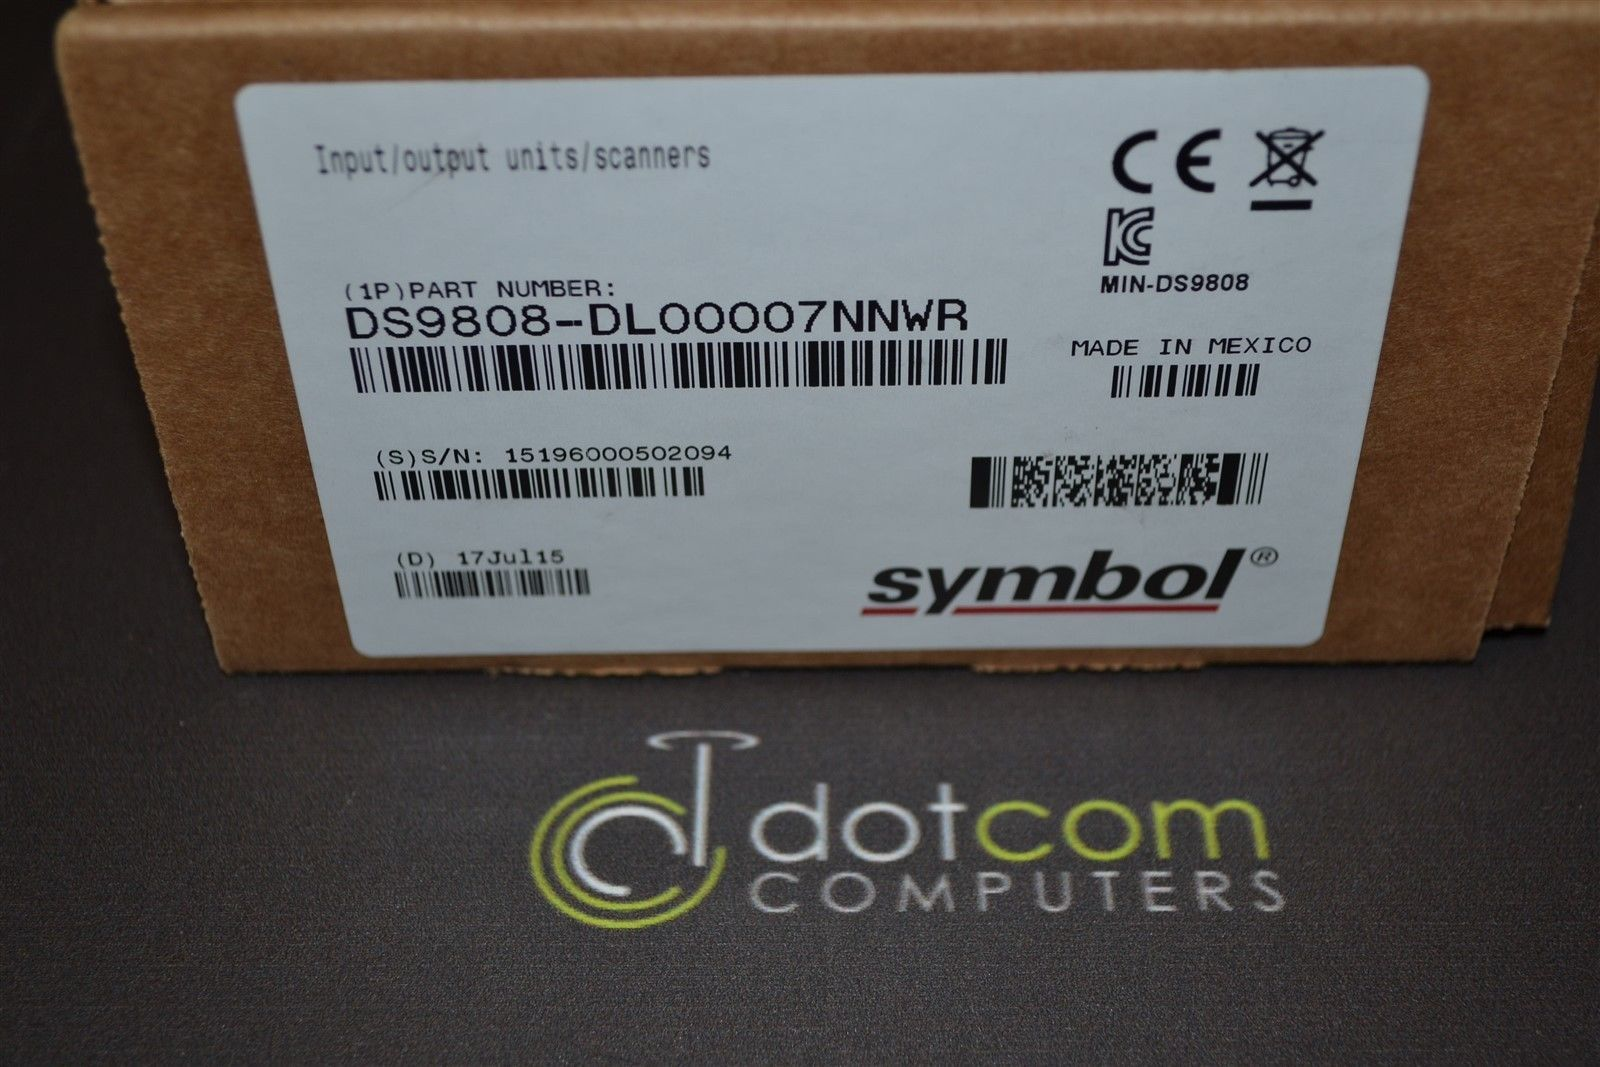 Symbol Barcode Scanner Ds9808 Sr00007nnwr New Deals Computers